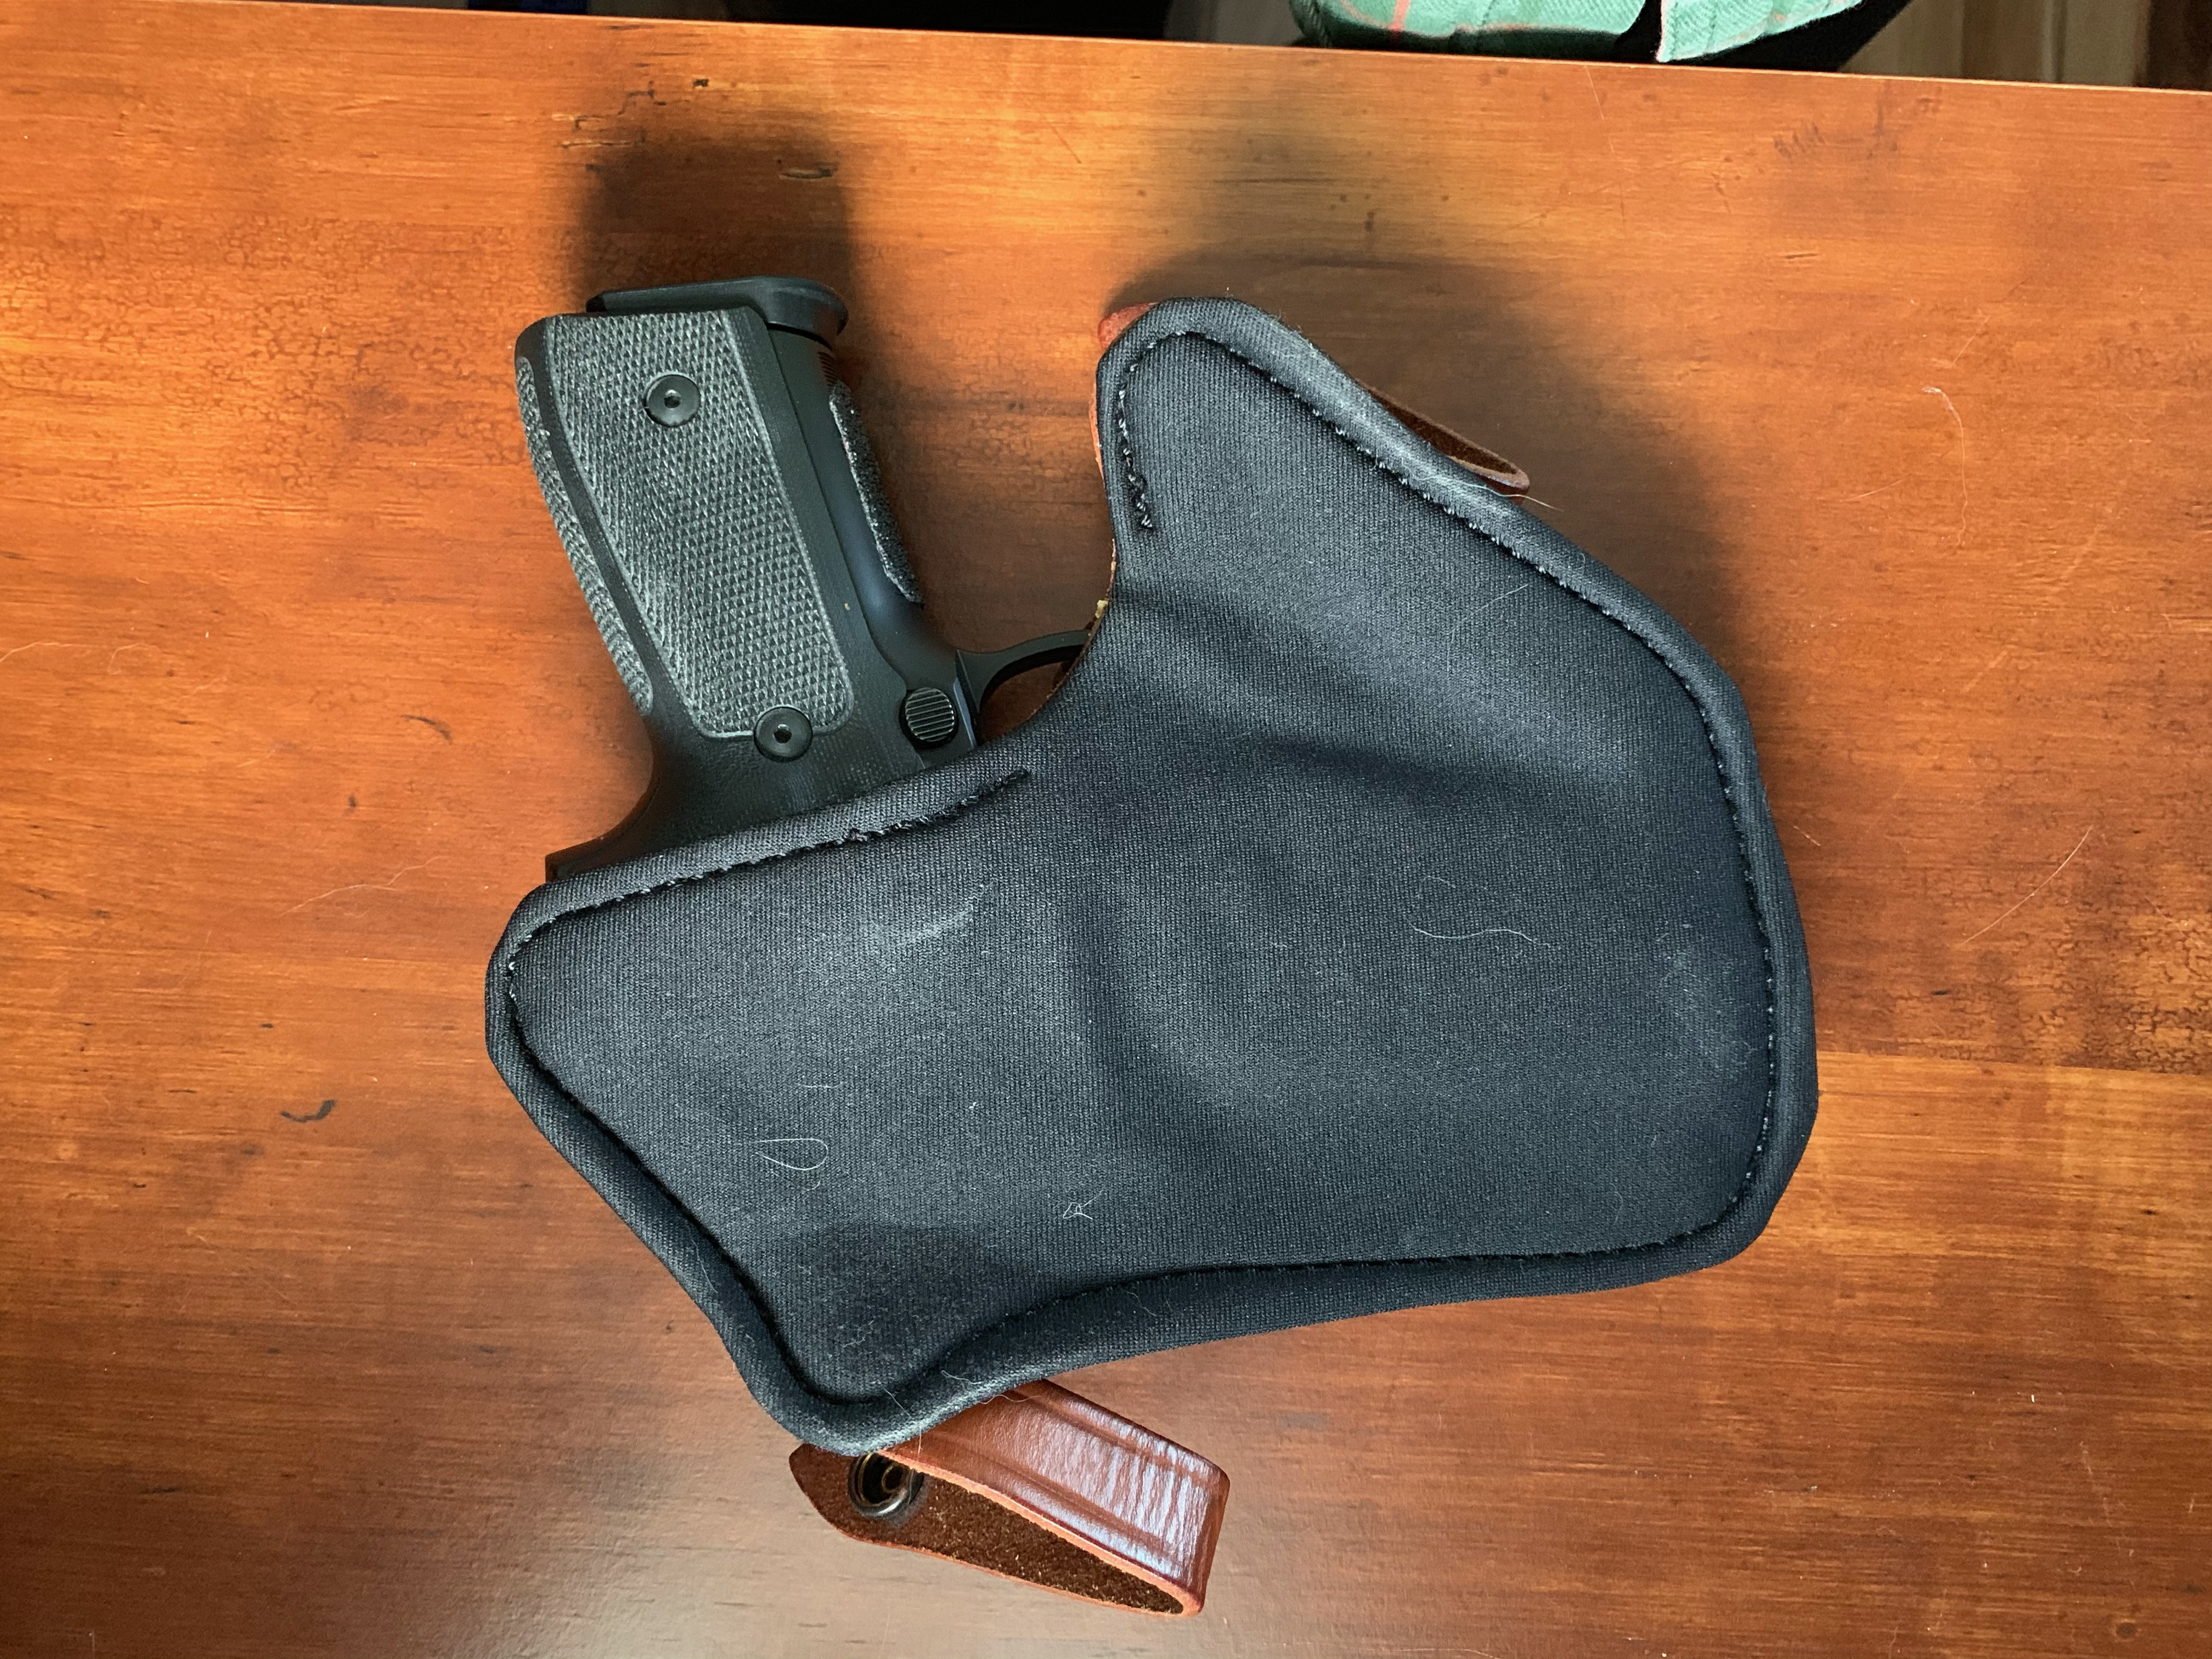 Best Holster of the Year Survey - Concealed Nation-33064cd0-1efa-48cd-8ded-736be76e157c.jpeg